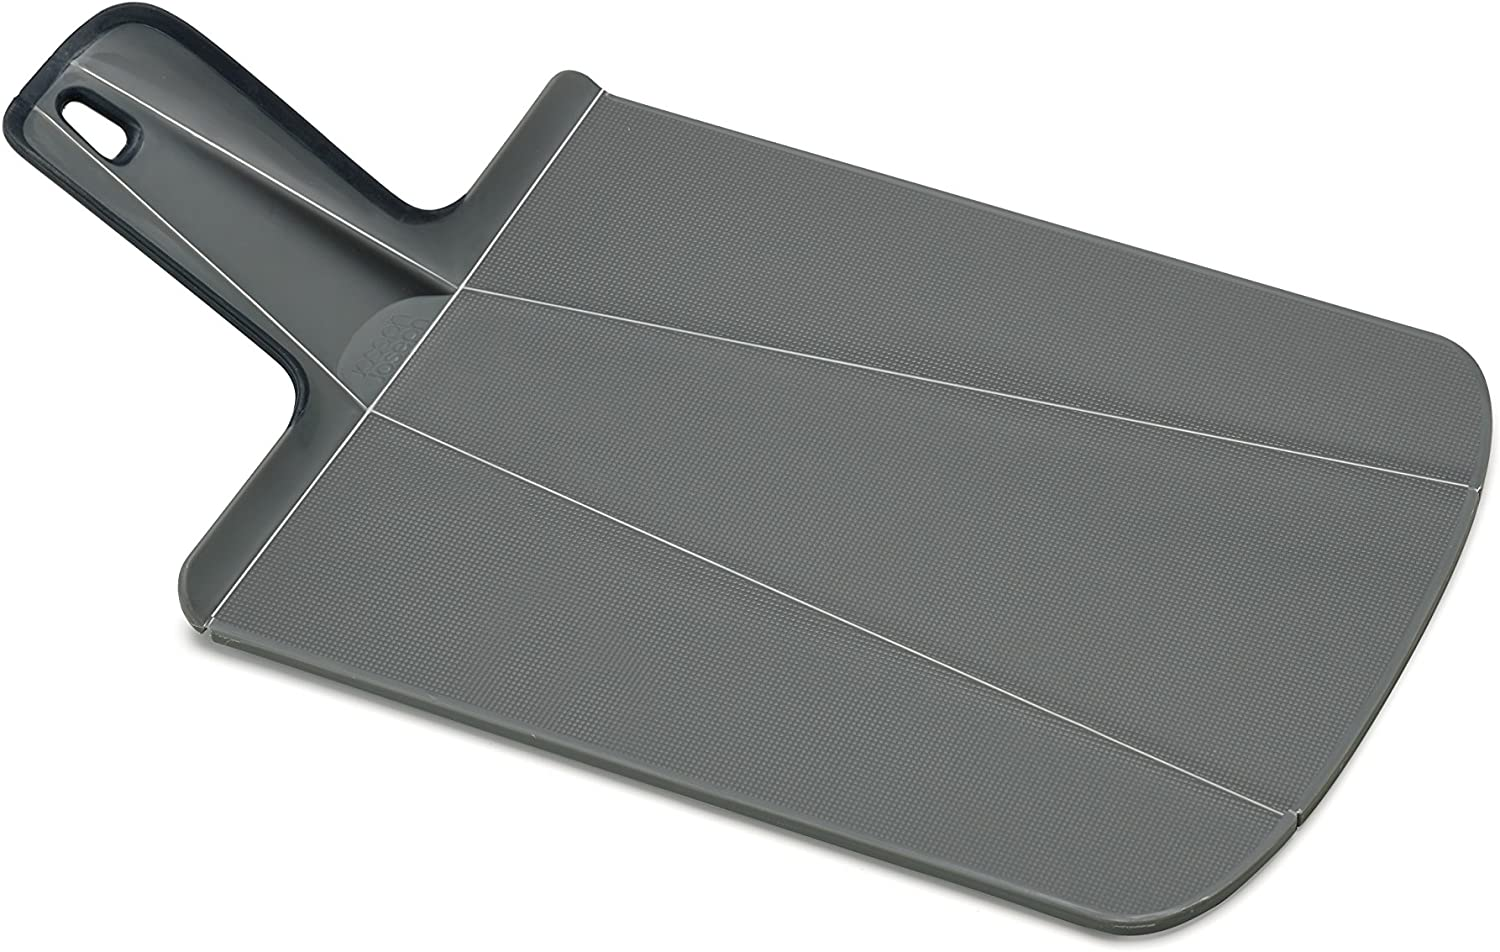 Joseph Joseph 60100 Chop2Pot Foldable Plastic Cutting Board 15-inch x 8.75-inch Chopping Board Kitchen Prep Mat with Non-Slip Feet 4-inch Handle Dishwasher Safe, Small, Gray